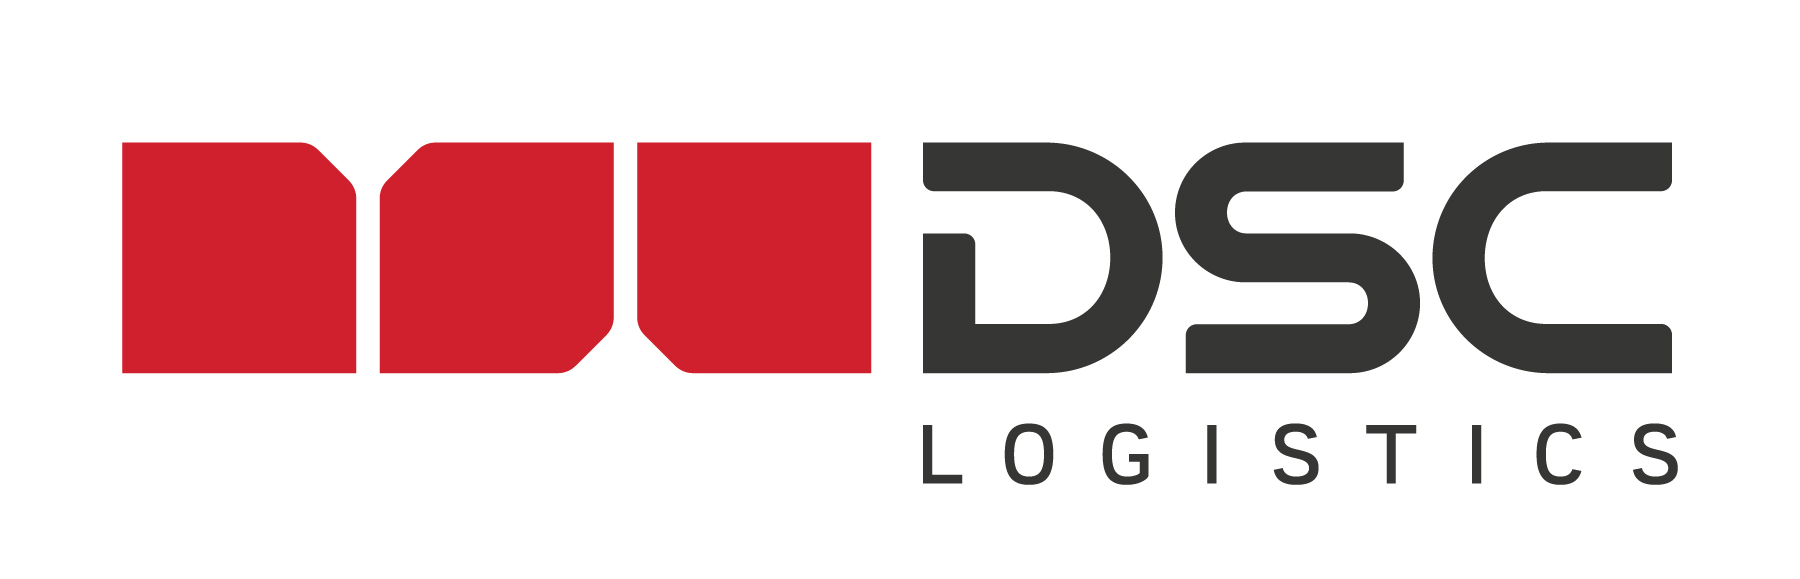 DSC Logistics Announces Evolution of Corporate Identity